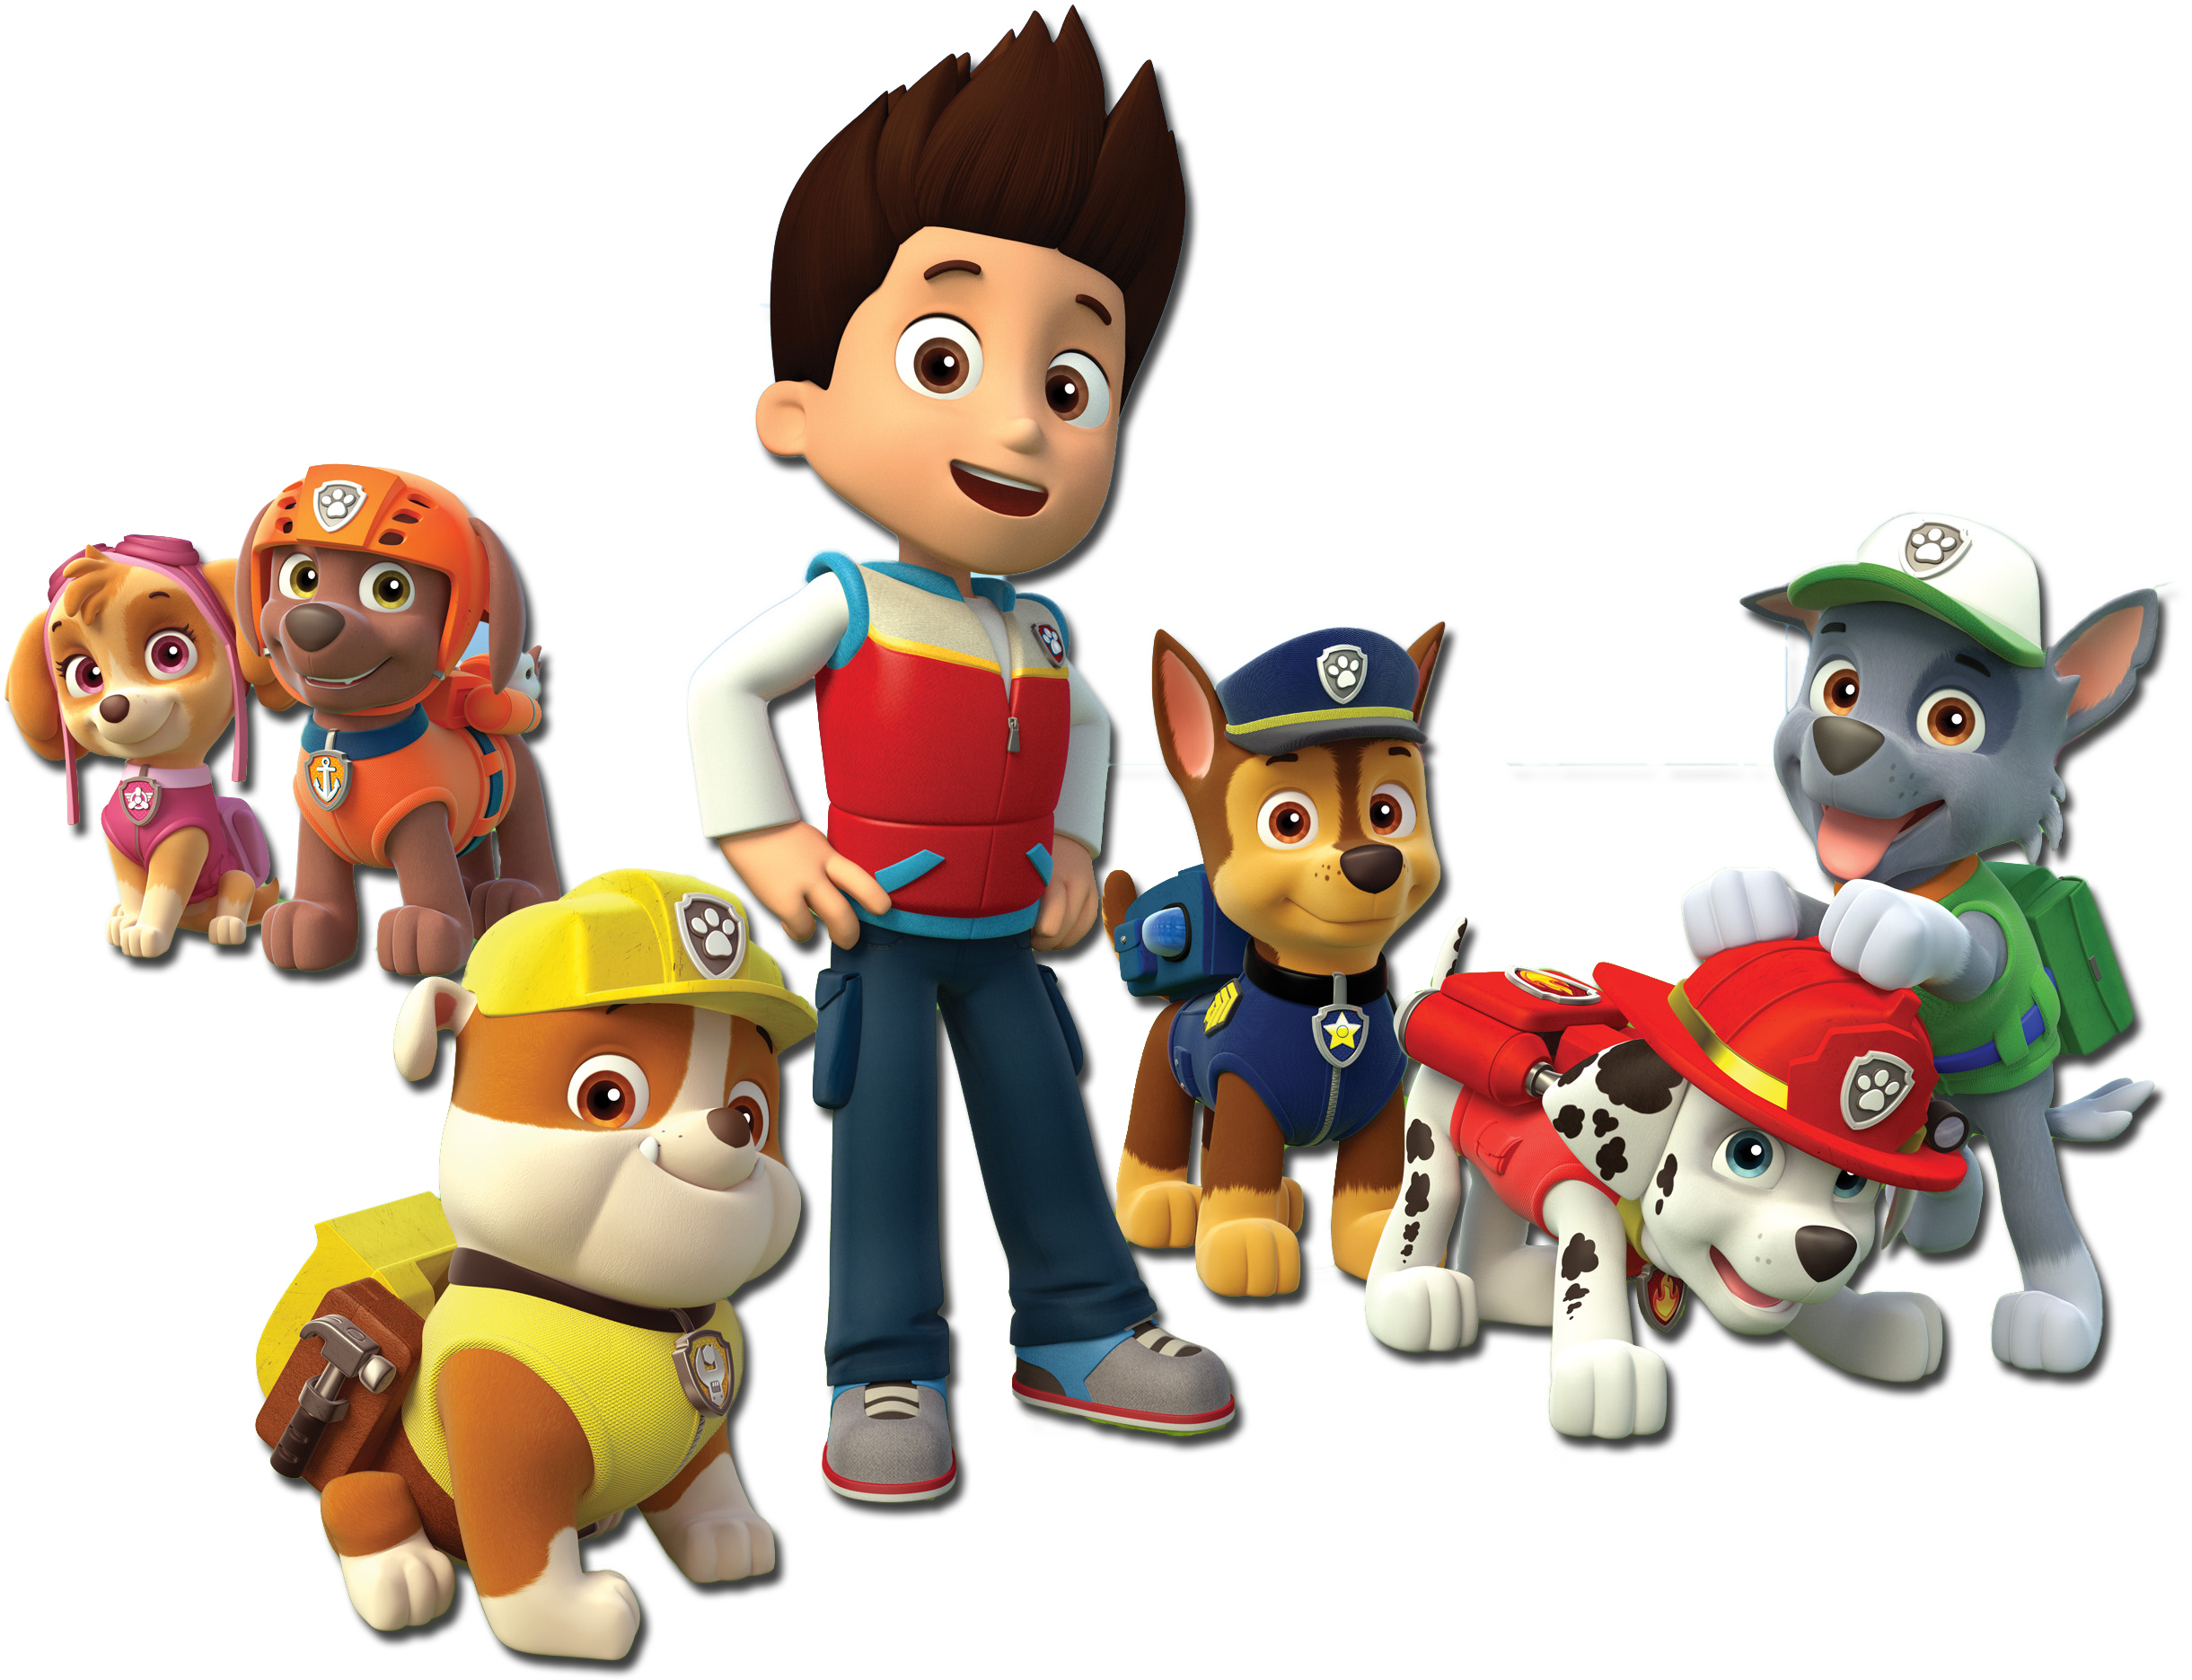 Ryder paw patrol png. Characters for designs birthdays